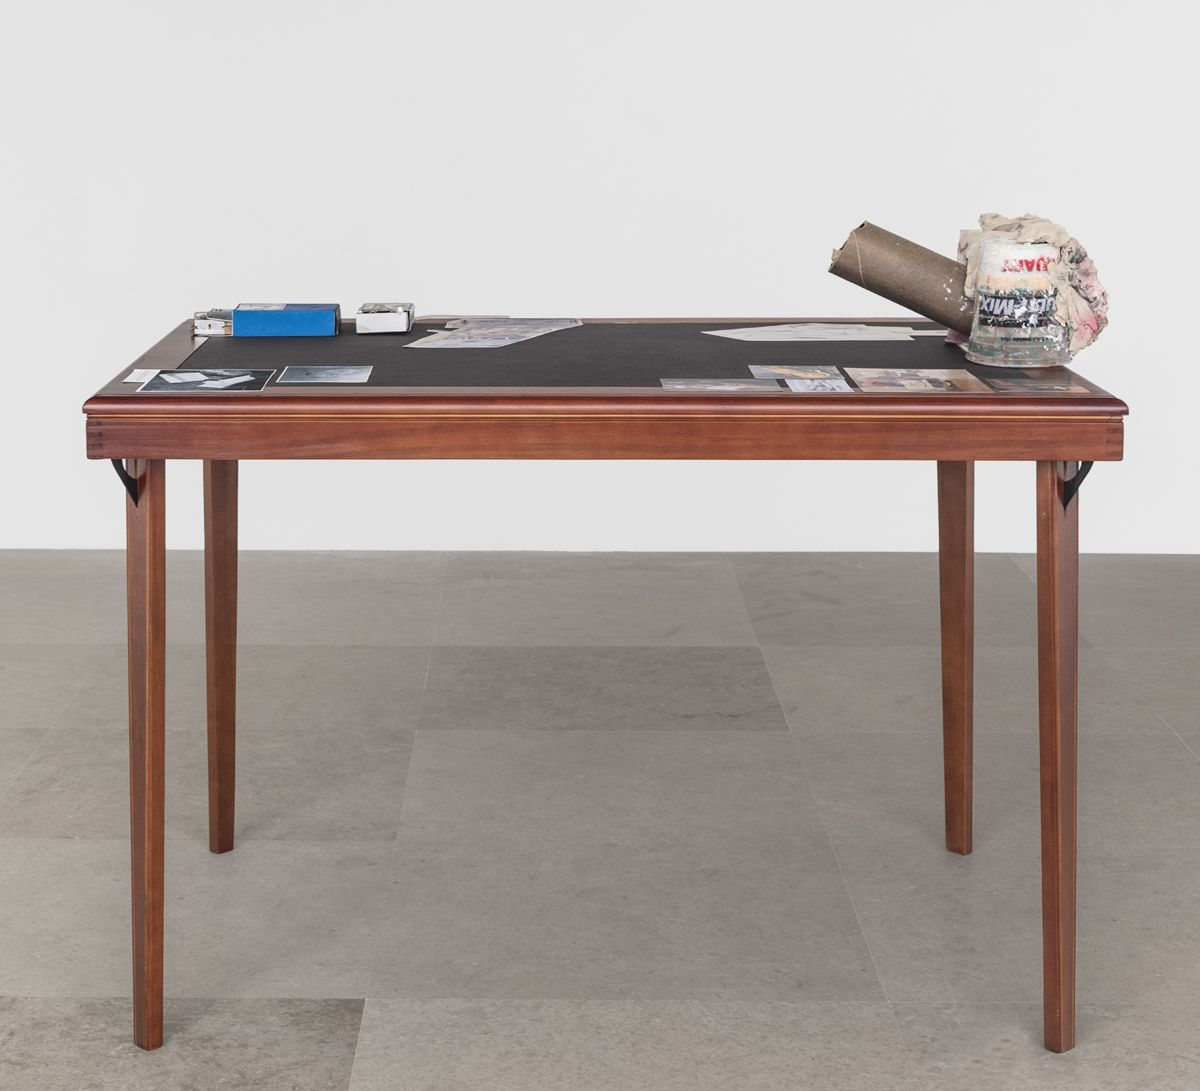 After Artaud, The sexual awkwardness of god, Rape Table, 2019, Plastic, air-dry clay, cardboard tube, boxes, razors, matches, mousetrap, office hardware, cow's blood and collage on table, 37 x 46 x 32 inches (94 x 116.8 x 81.3 cm)